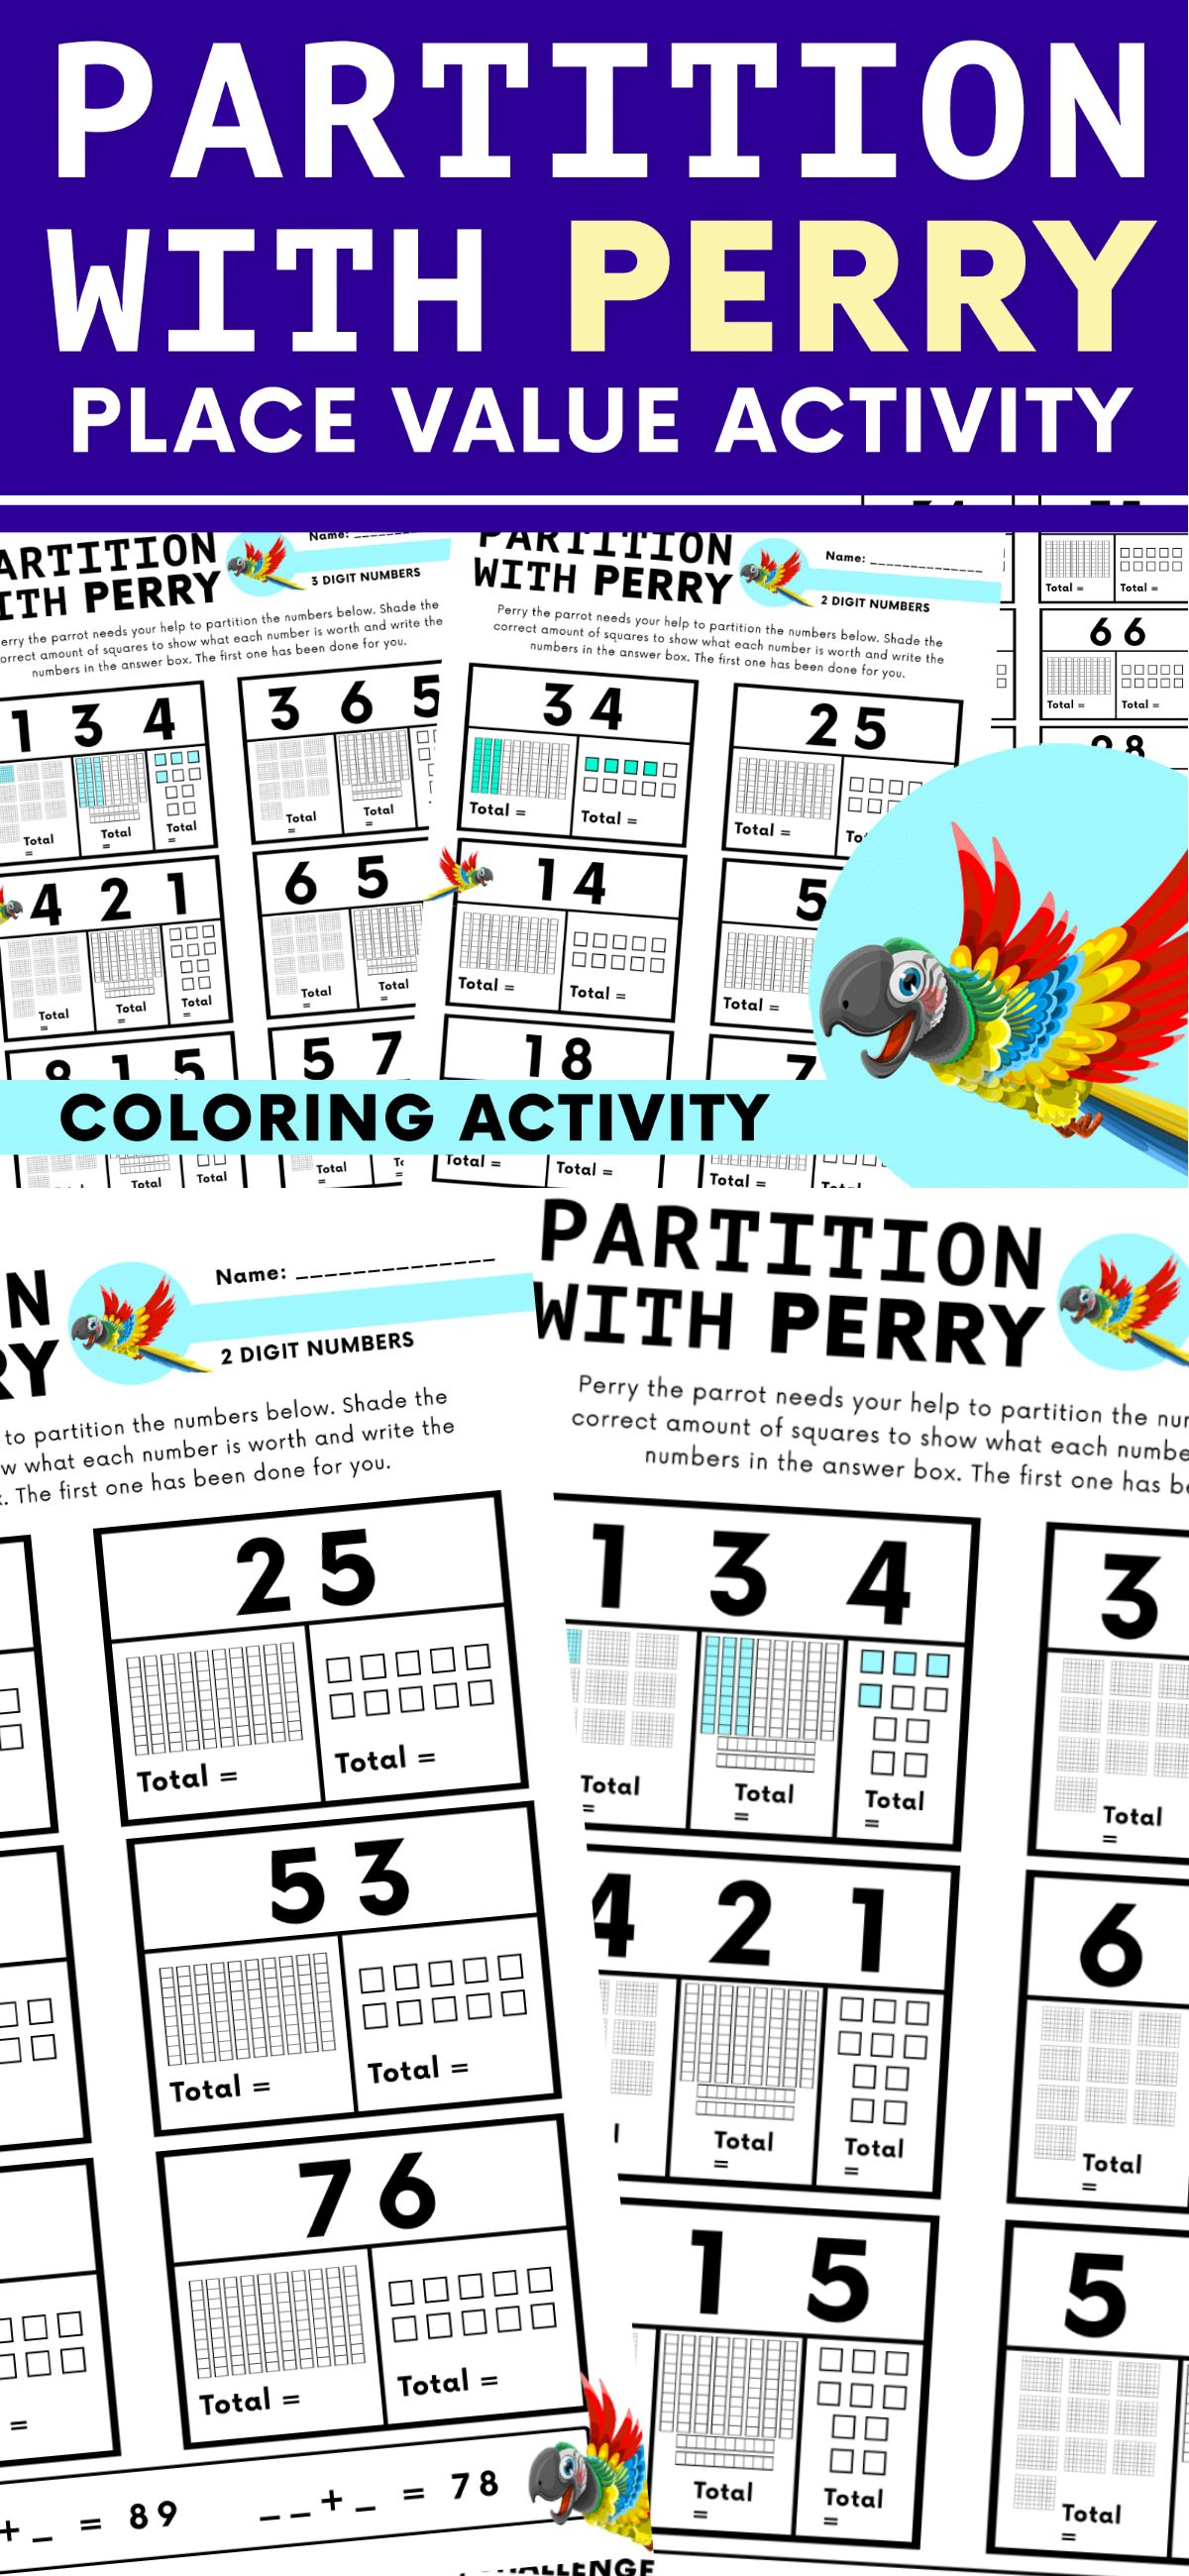 Place Value Coloring Activity